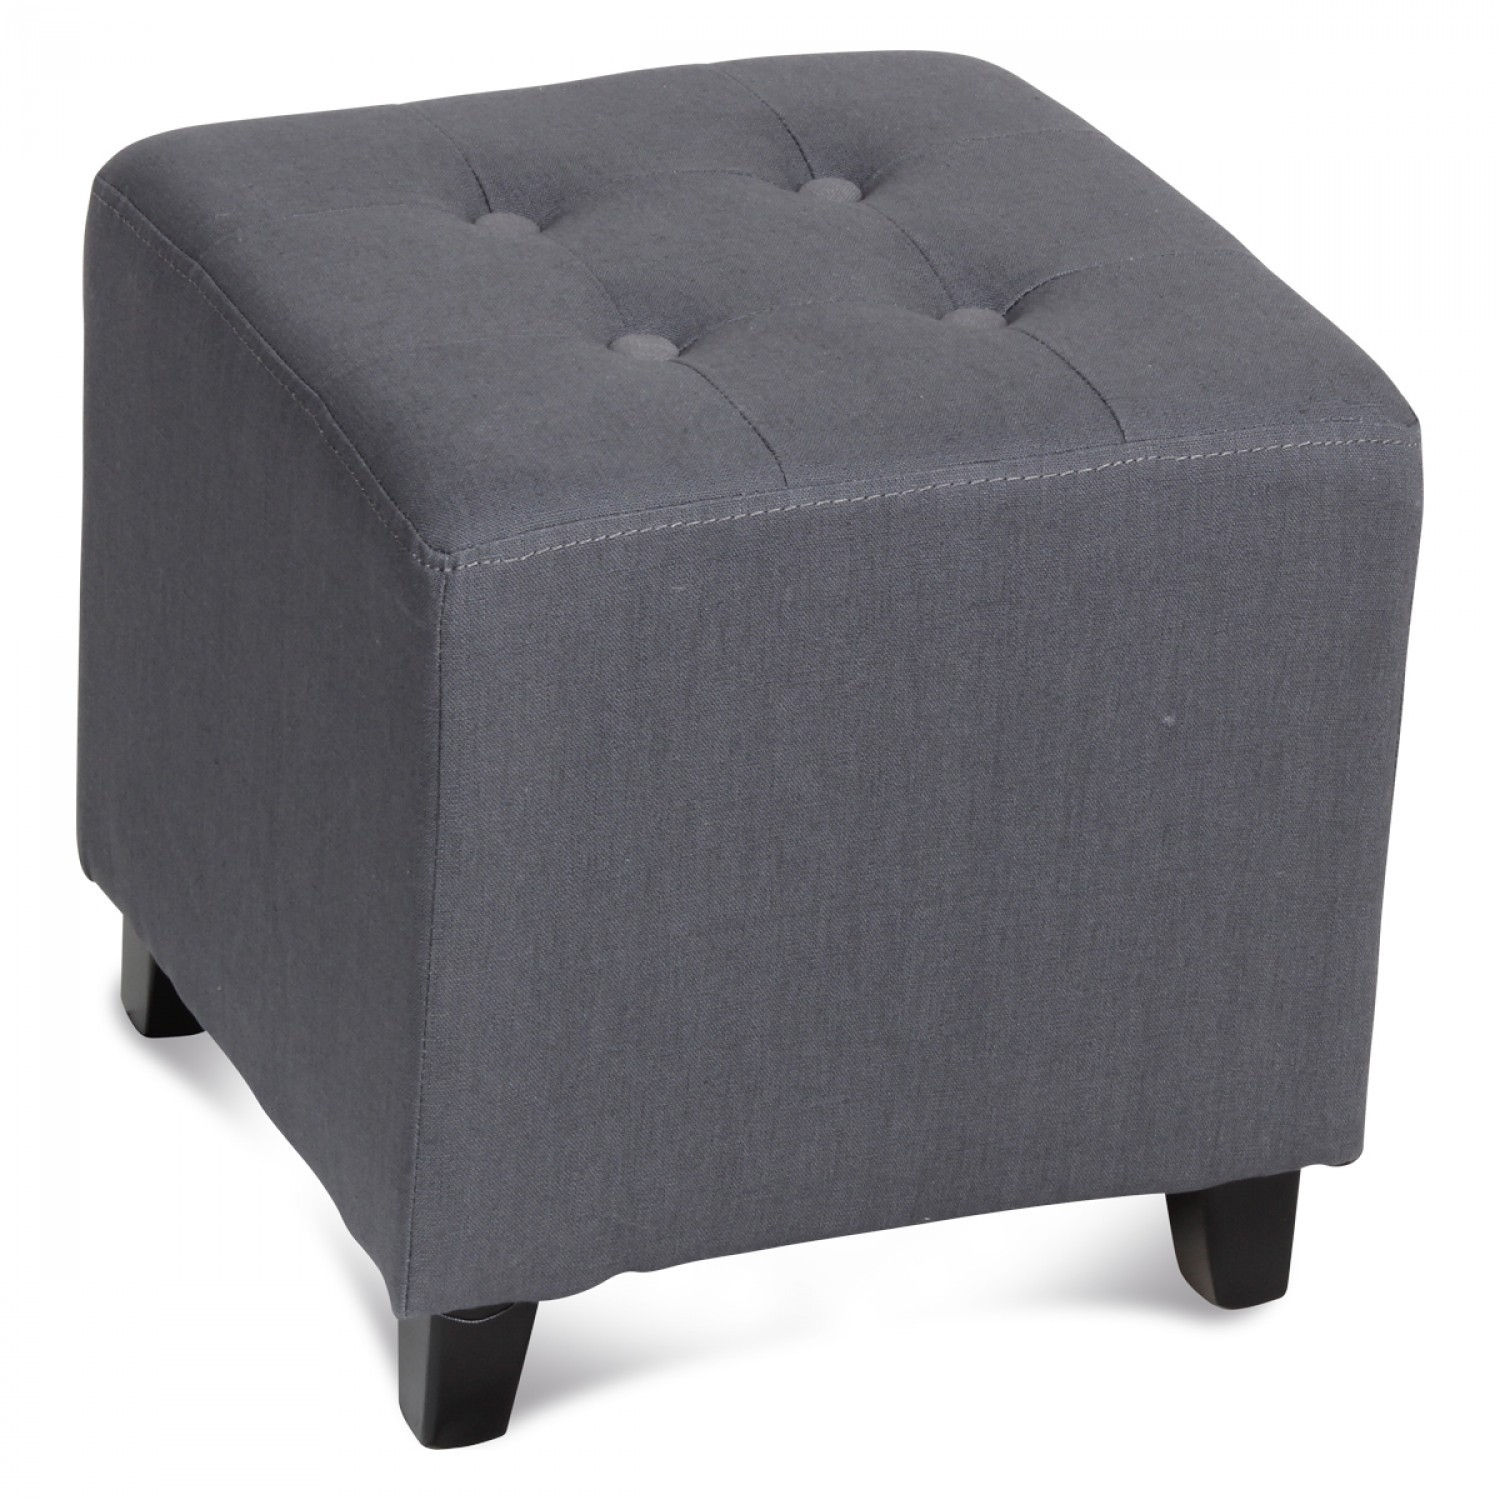 pouf carr capitonn gris demeure et jardin. Black Bedroom Furniture Sets. Home Design Ideas